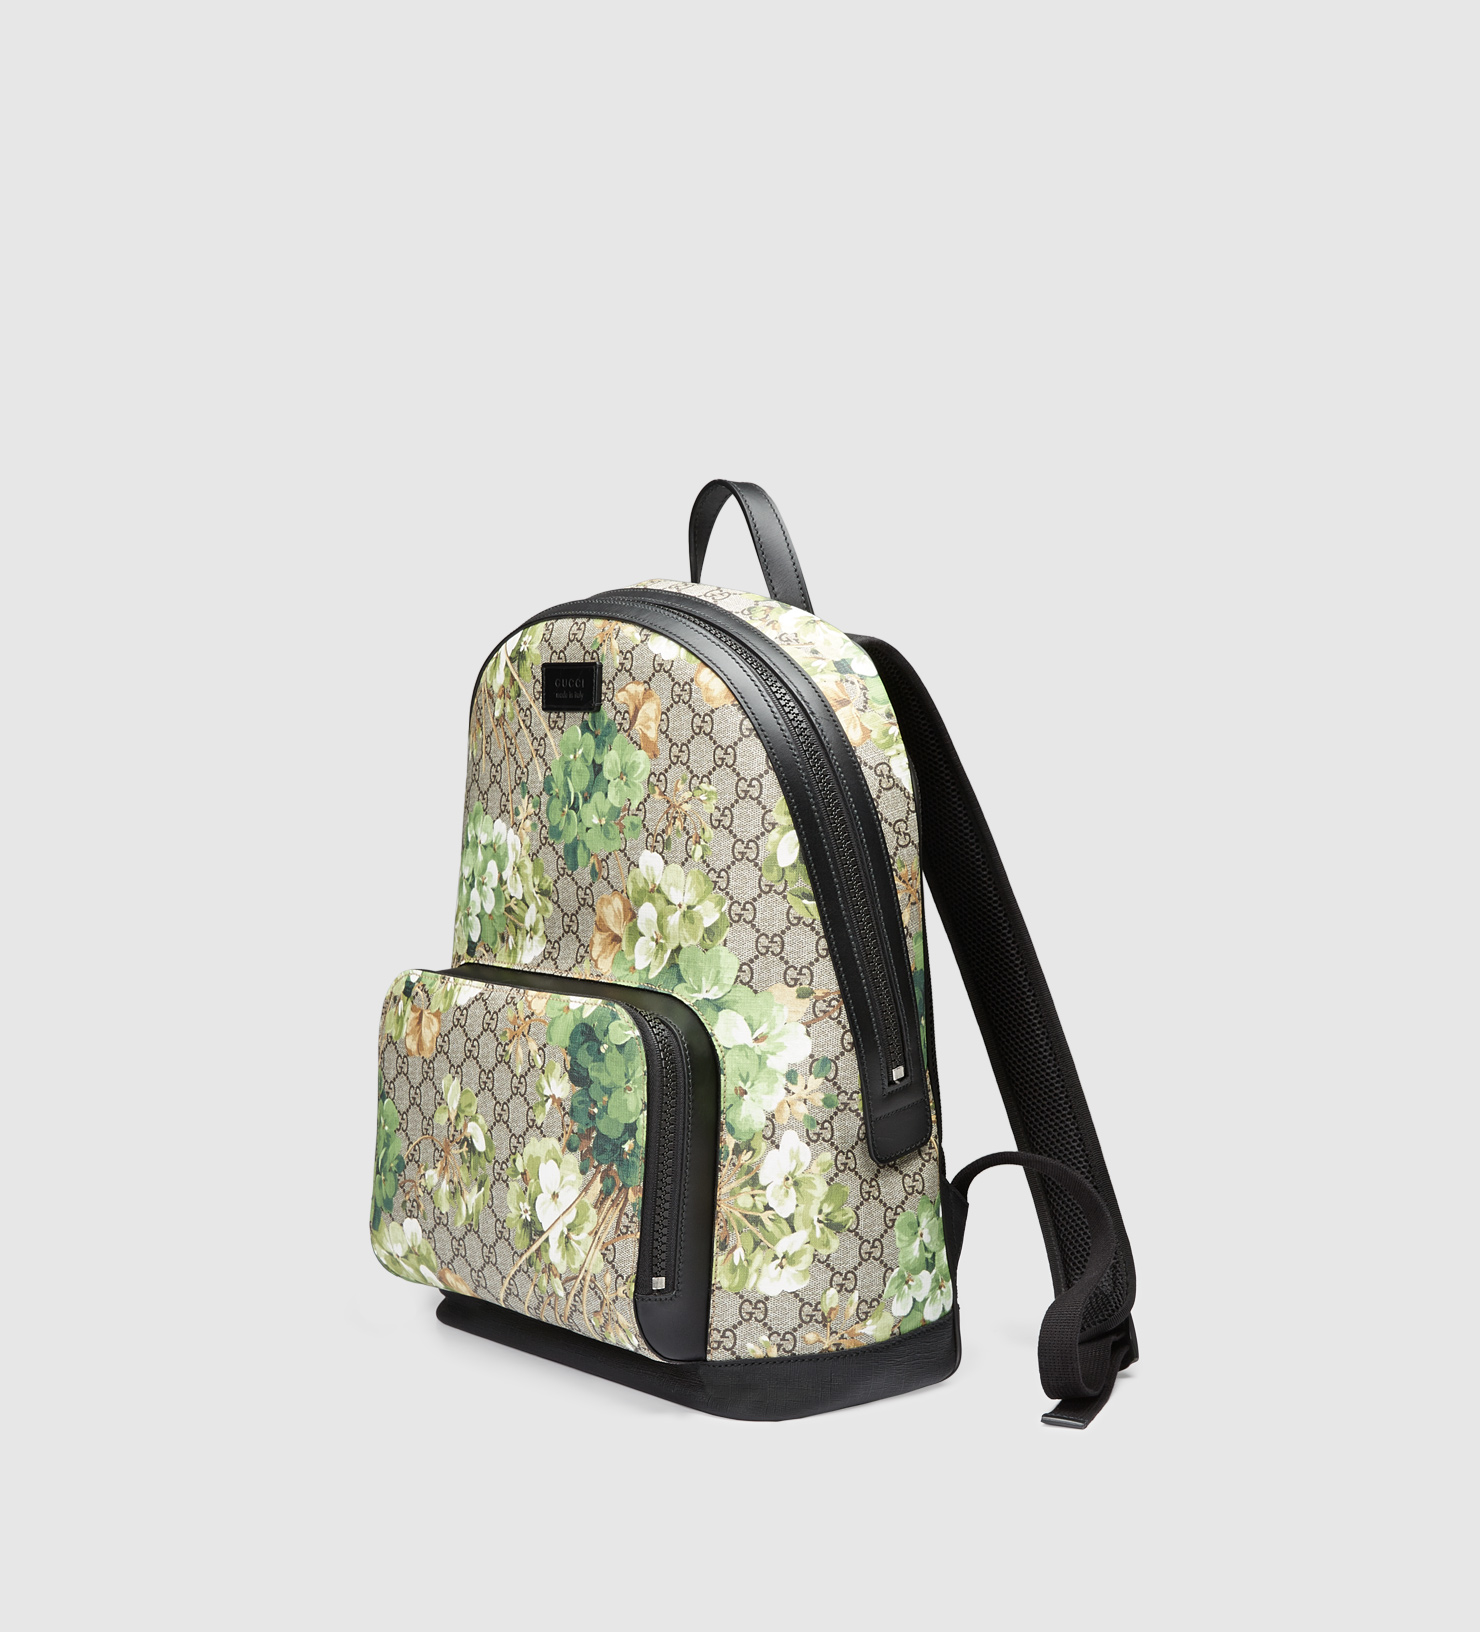 c3a2cdd6aaa Lyst - Gucci Gg Blooms Backpack in Green for Men